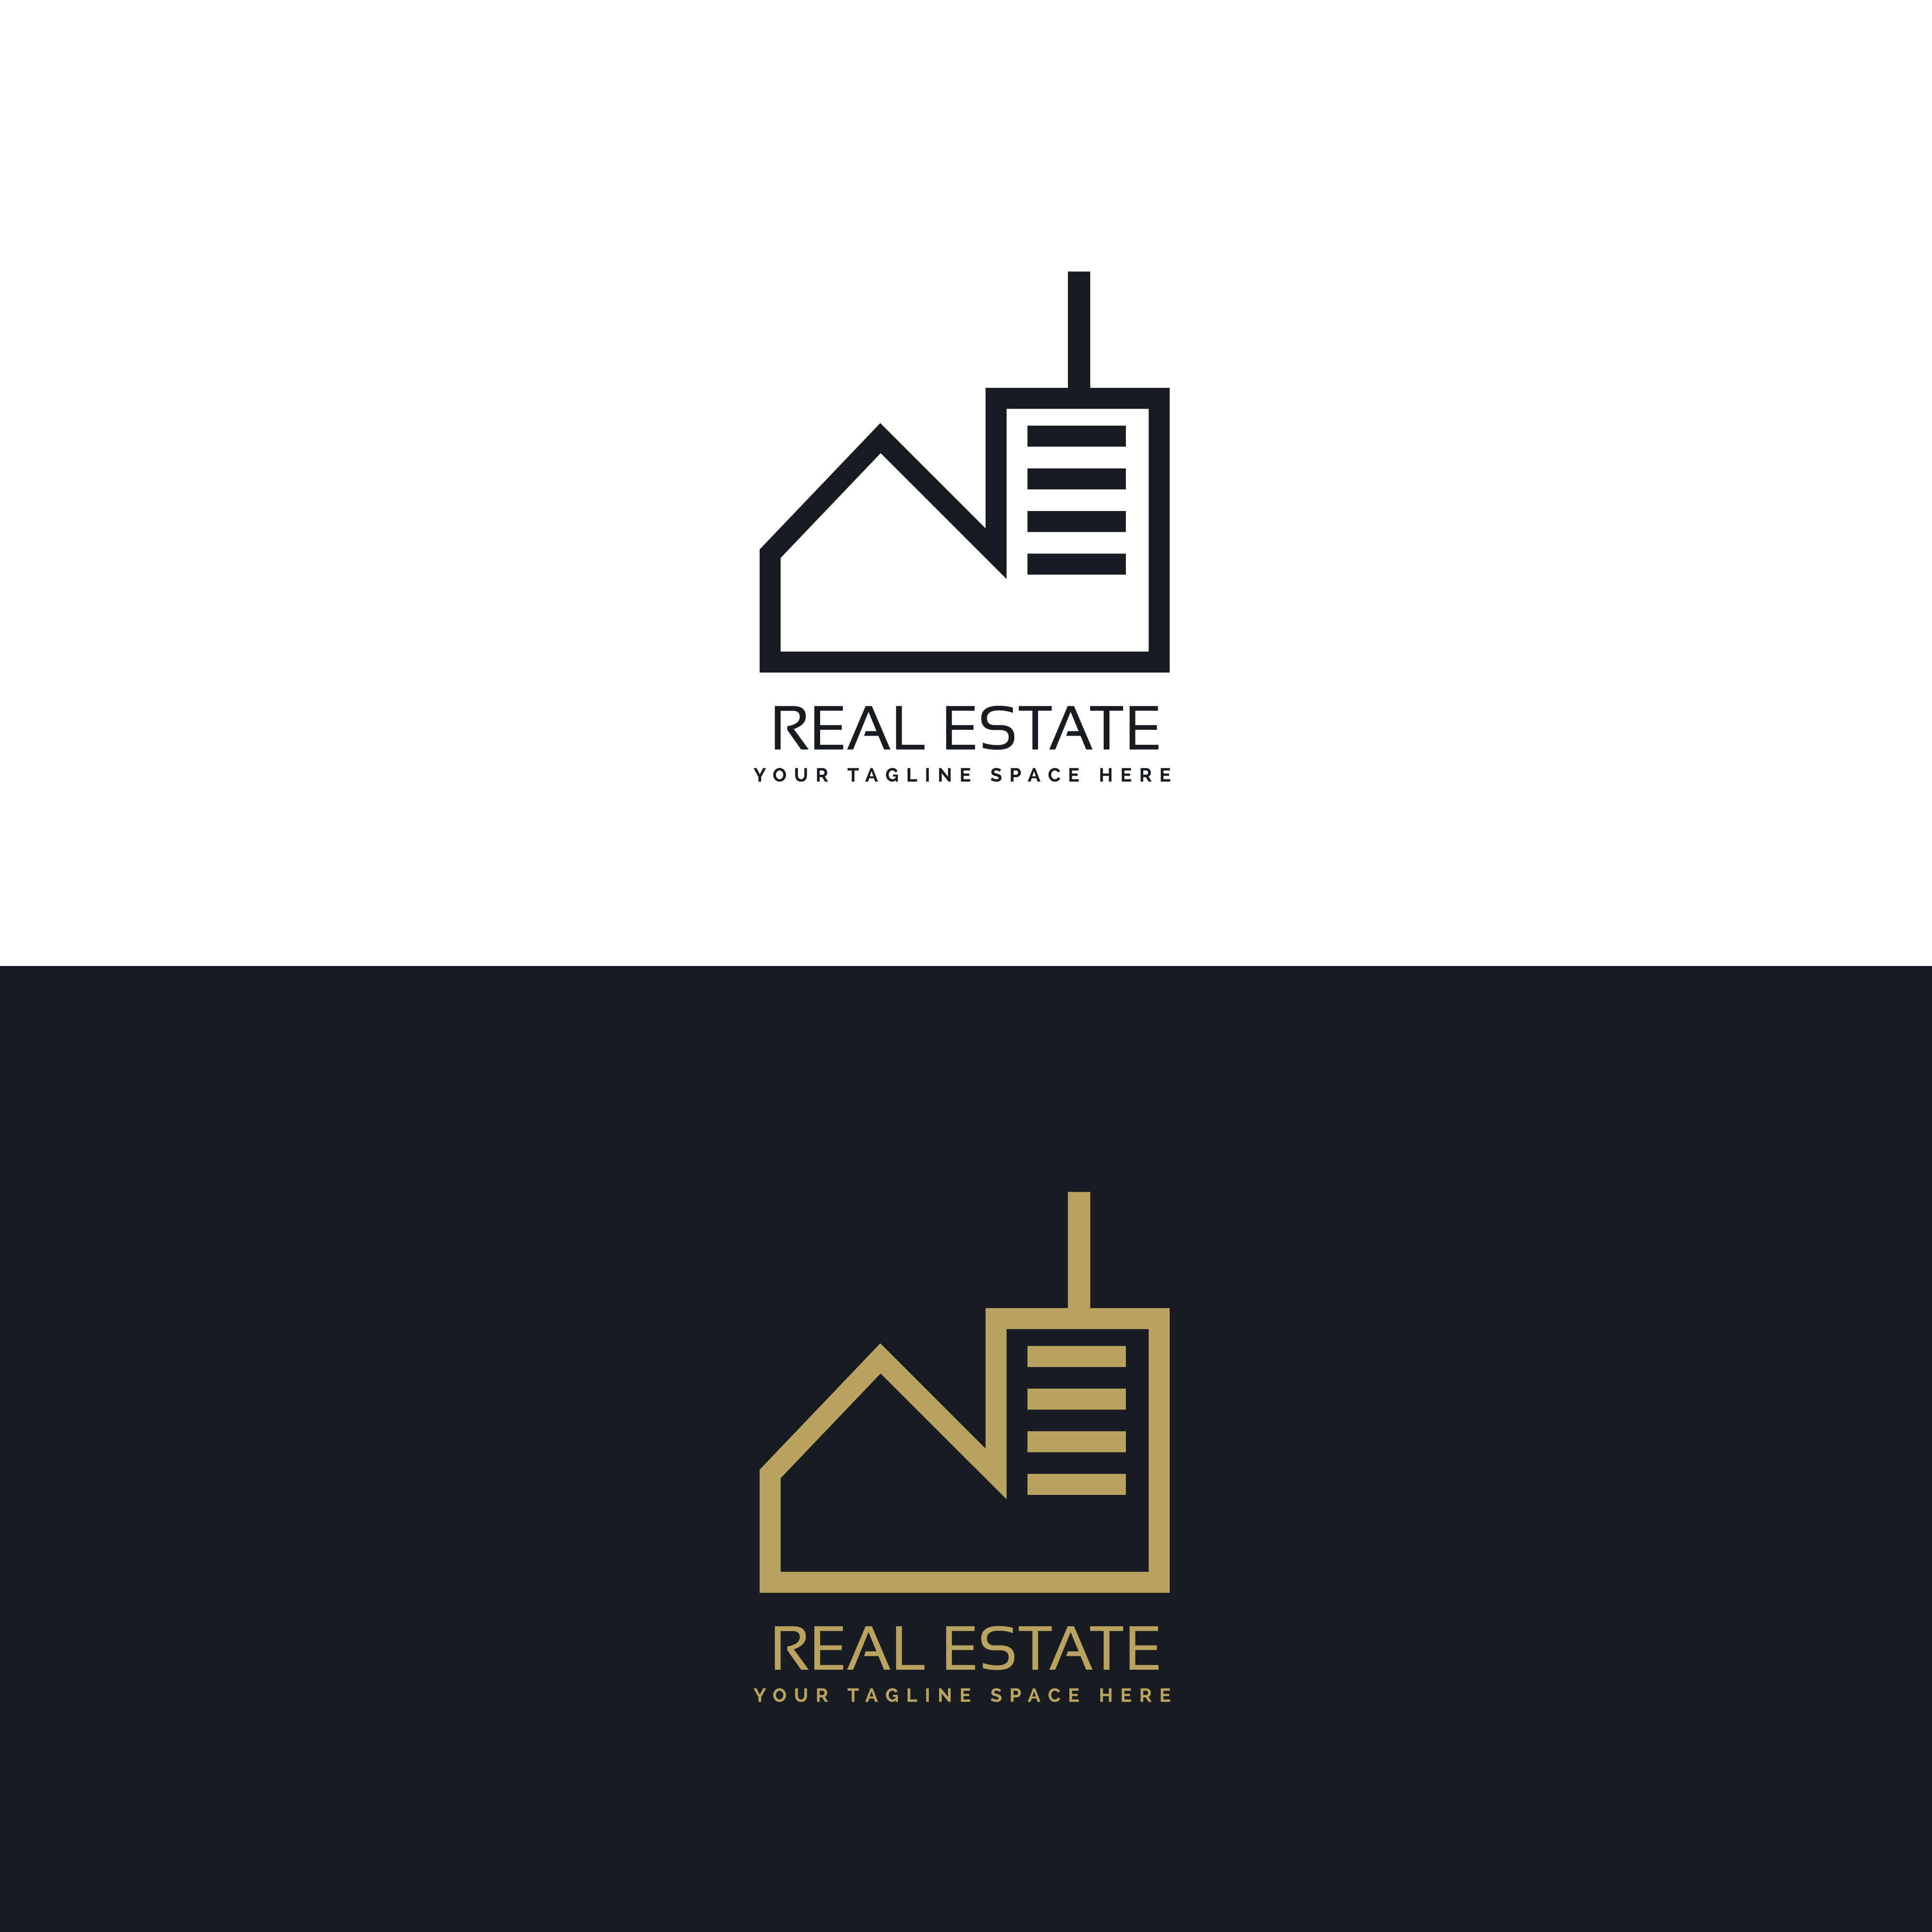 vector-modern-real-estate-logo-design-concept.jpg